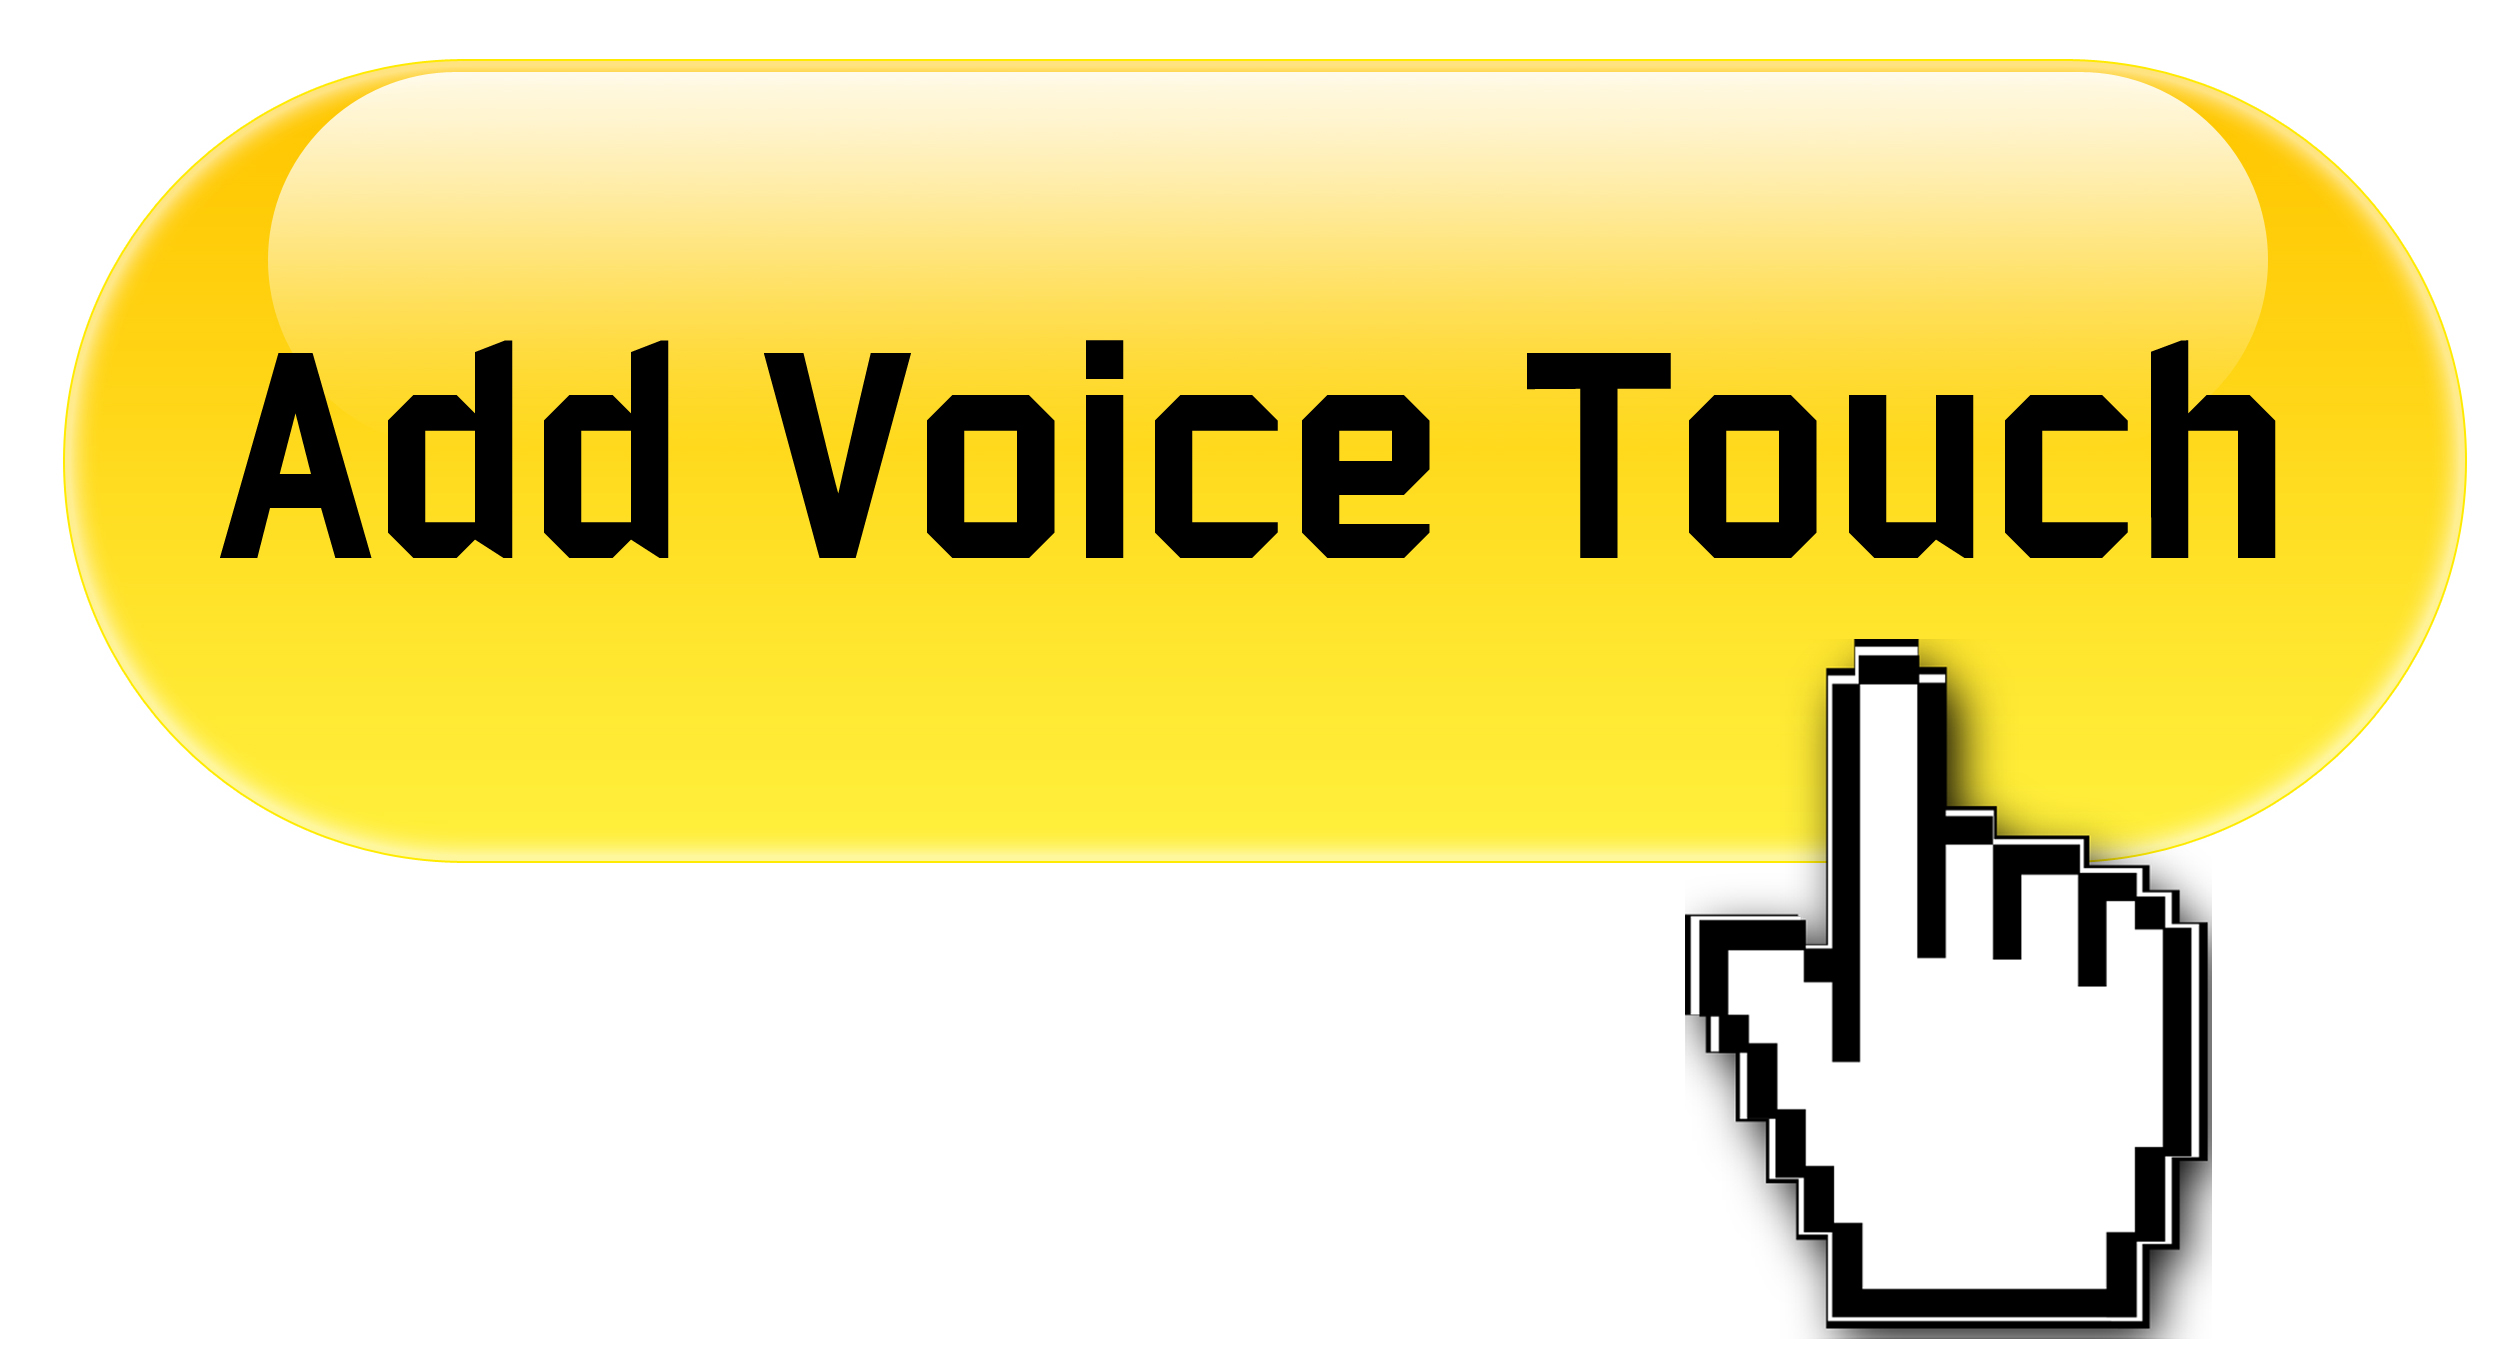 Add Voice Touch